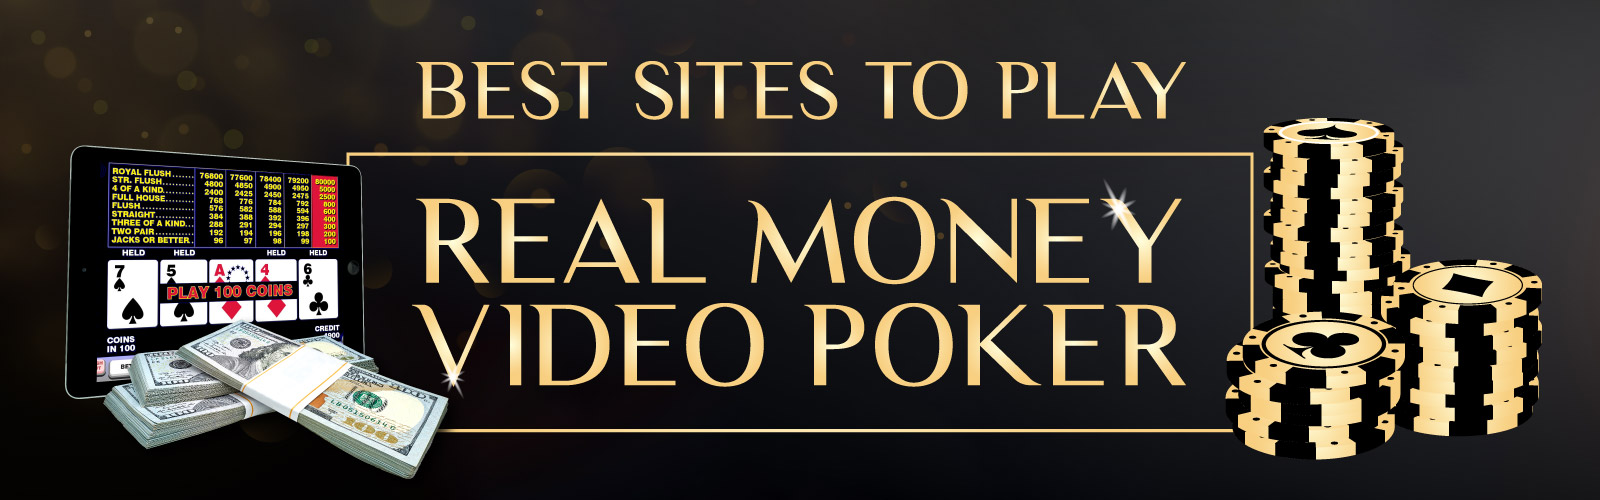 Best Sites to Play Online Video Poker for Real Money